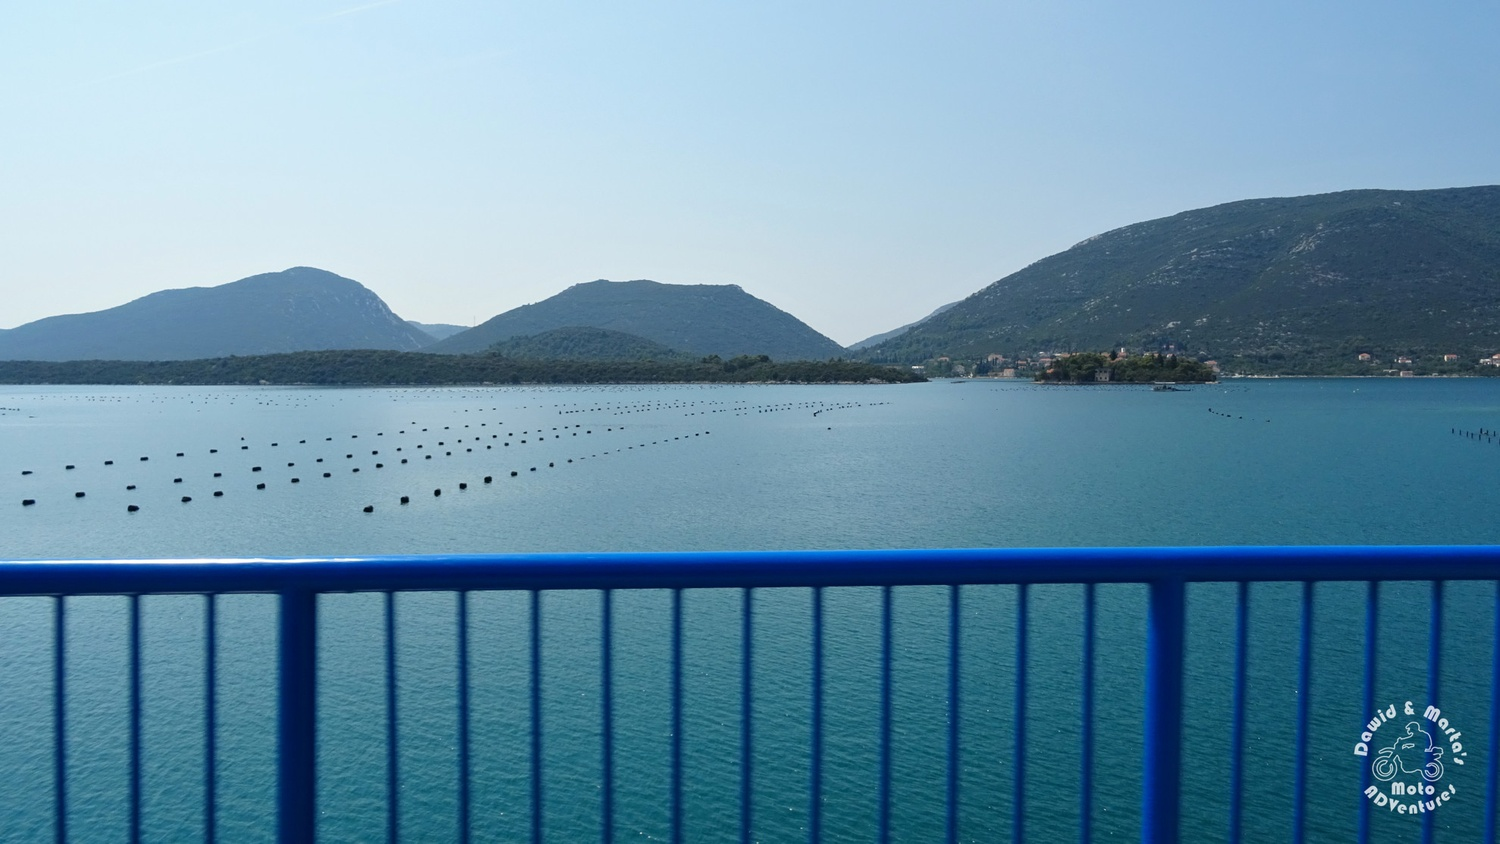 Bistrina Bridge and oysters farms in the sea